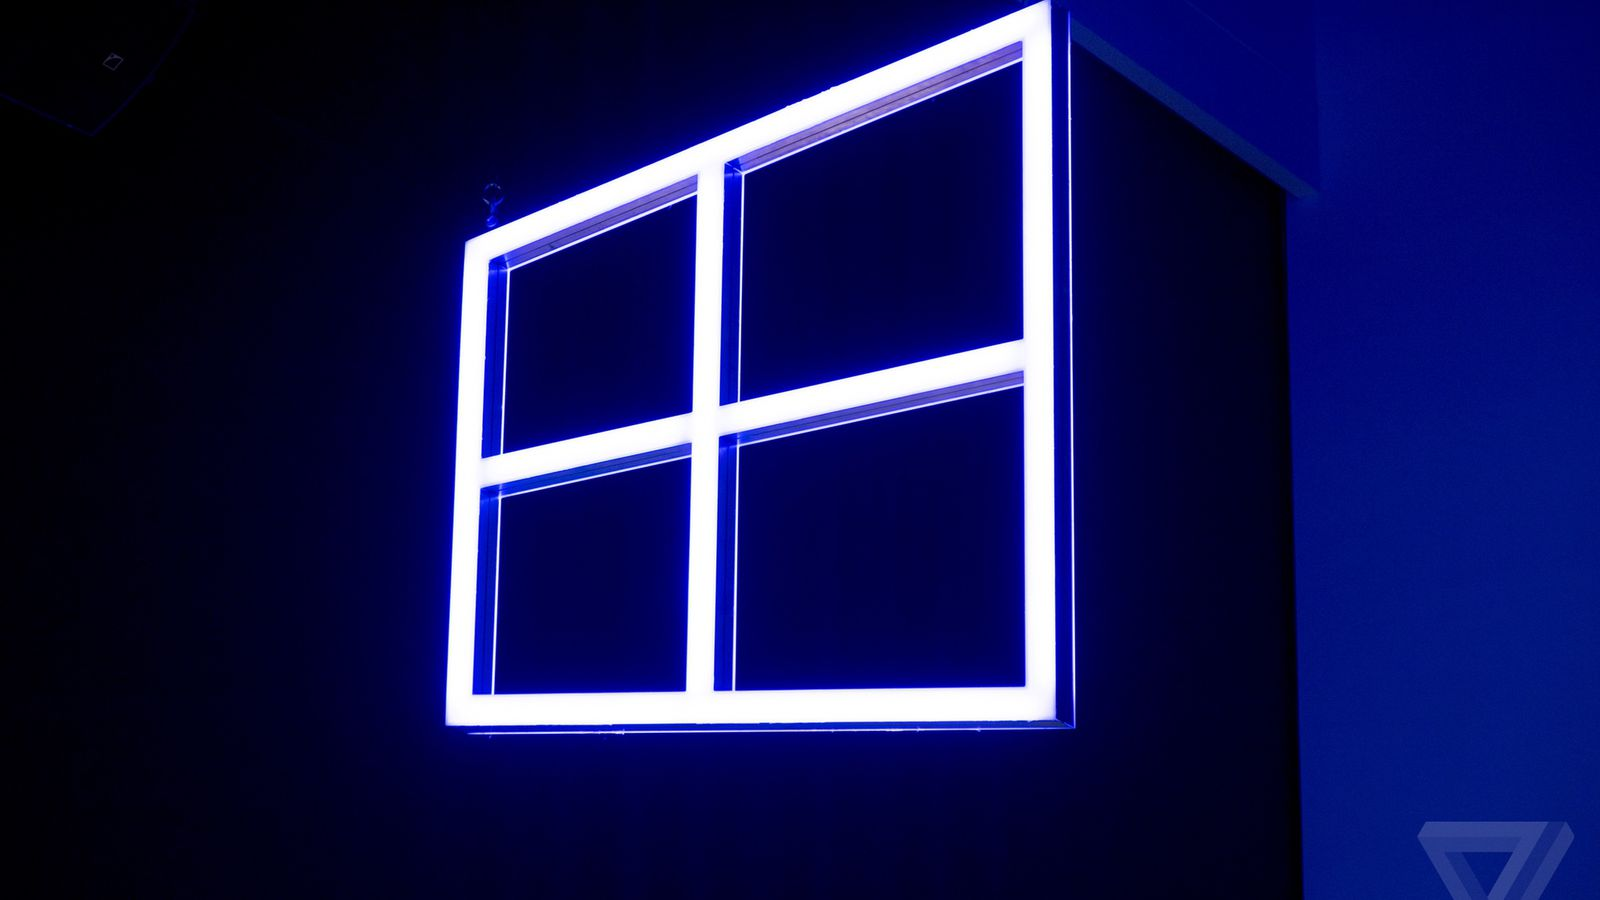 Microsoft forced to issue emergency Flash fix after delaying Windows patches